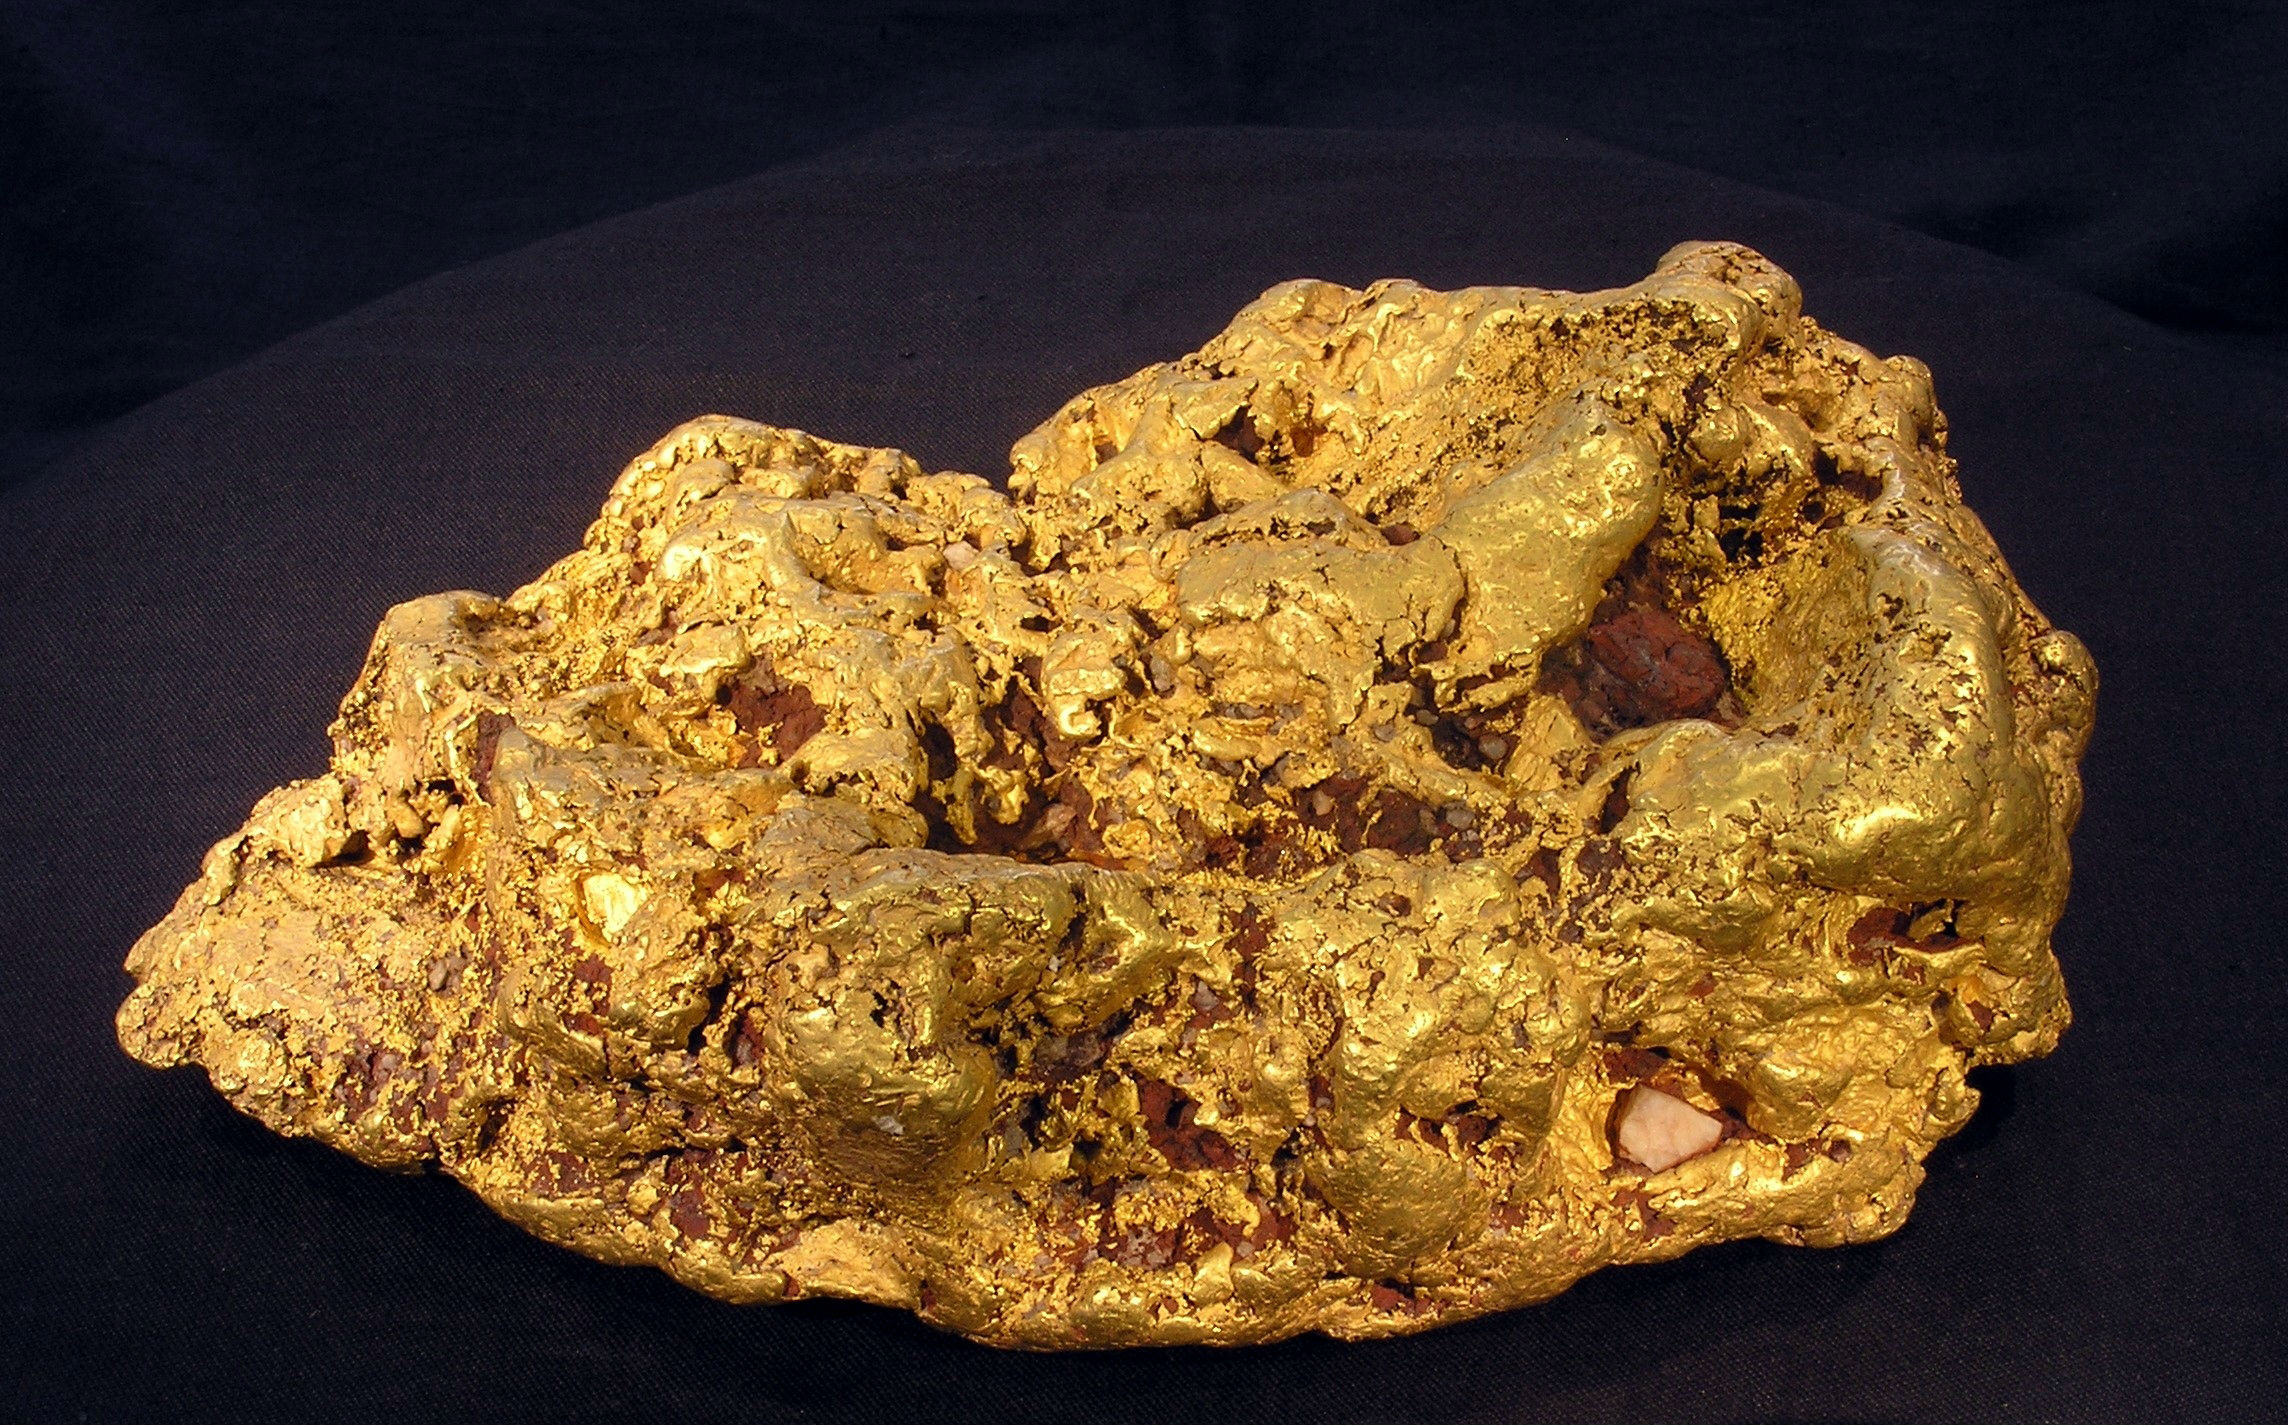 Gold nugget against a black background.